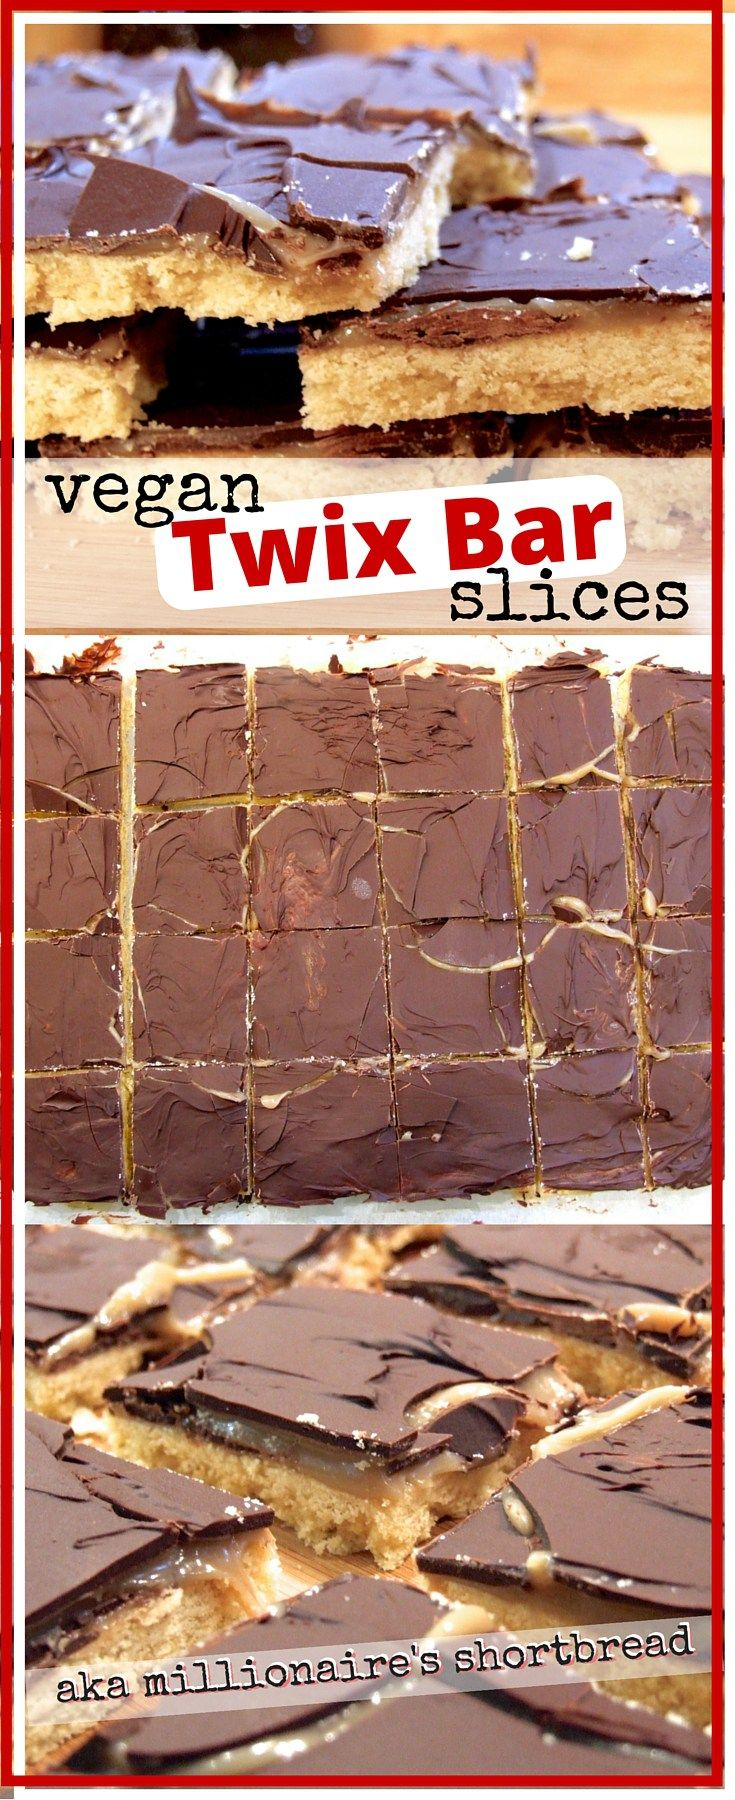 Crumbly shortbread biscuit, gooey dairy-free caramel and luscious dark chocolate. These gorgeous vegan millionaire's shortbread slices are a sure-fire hit! (Parve)